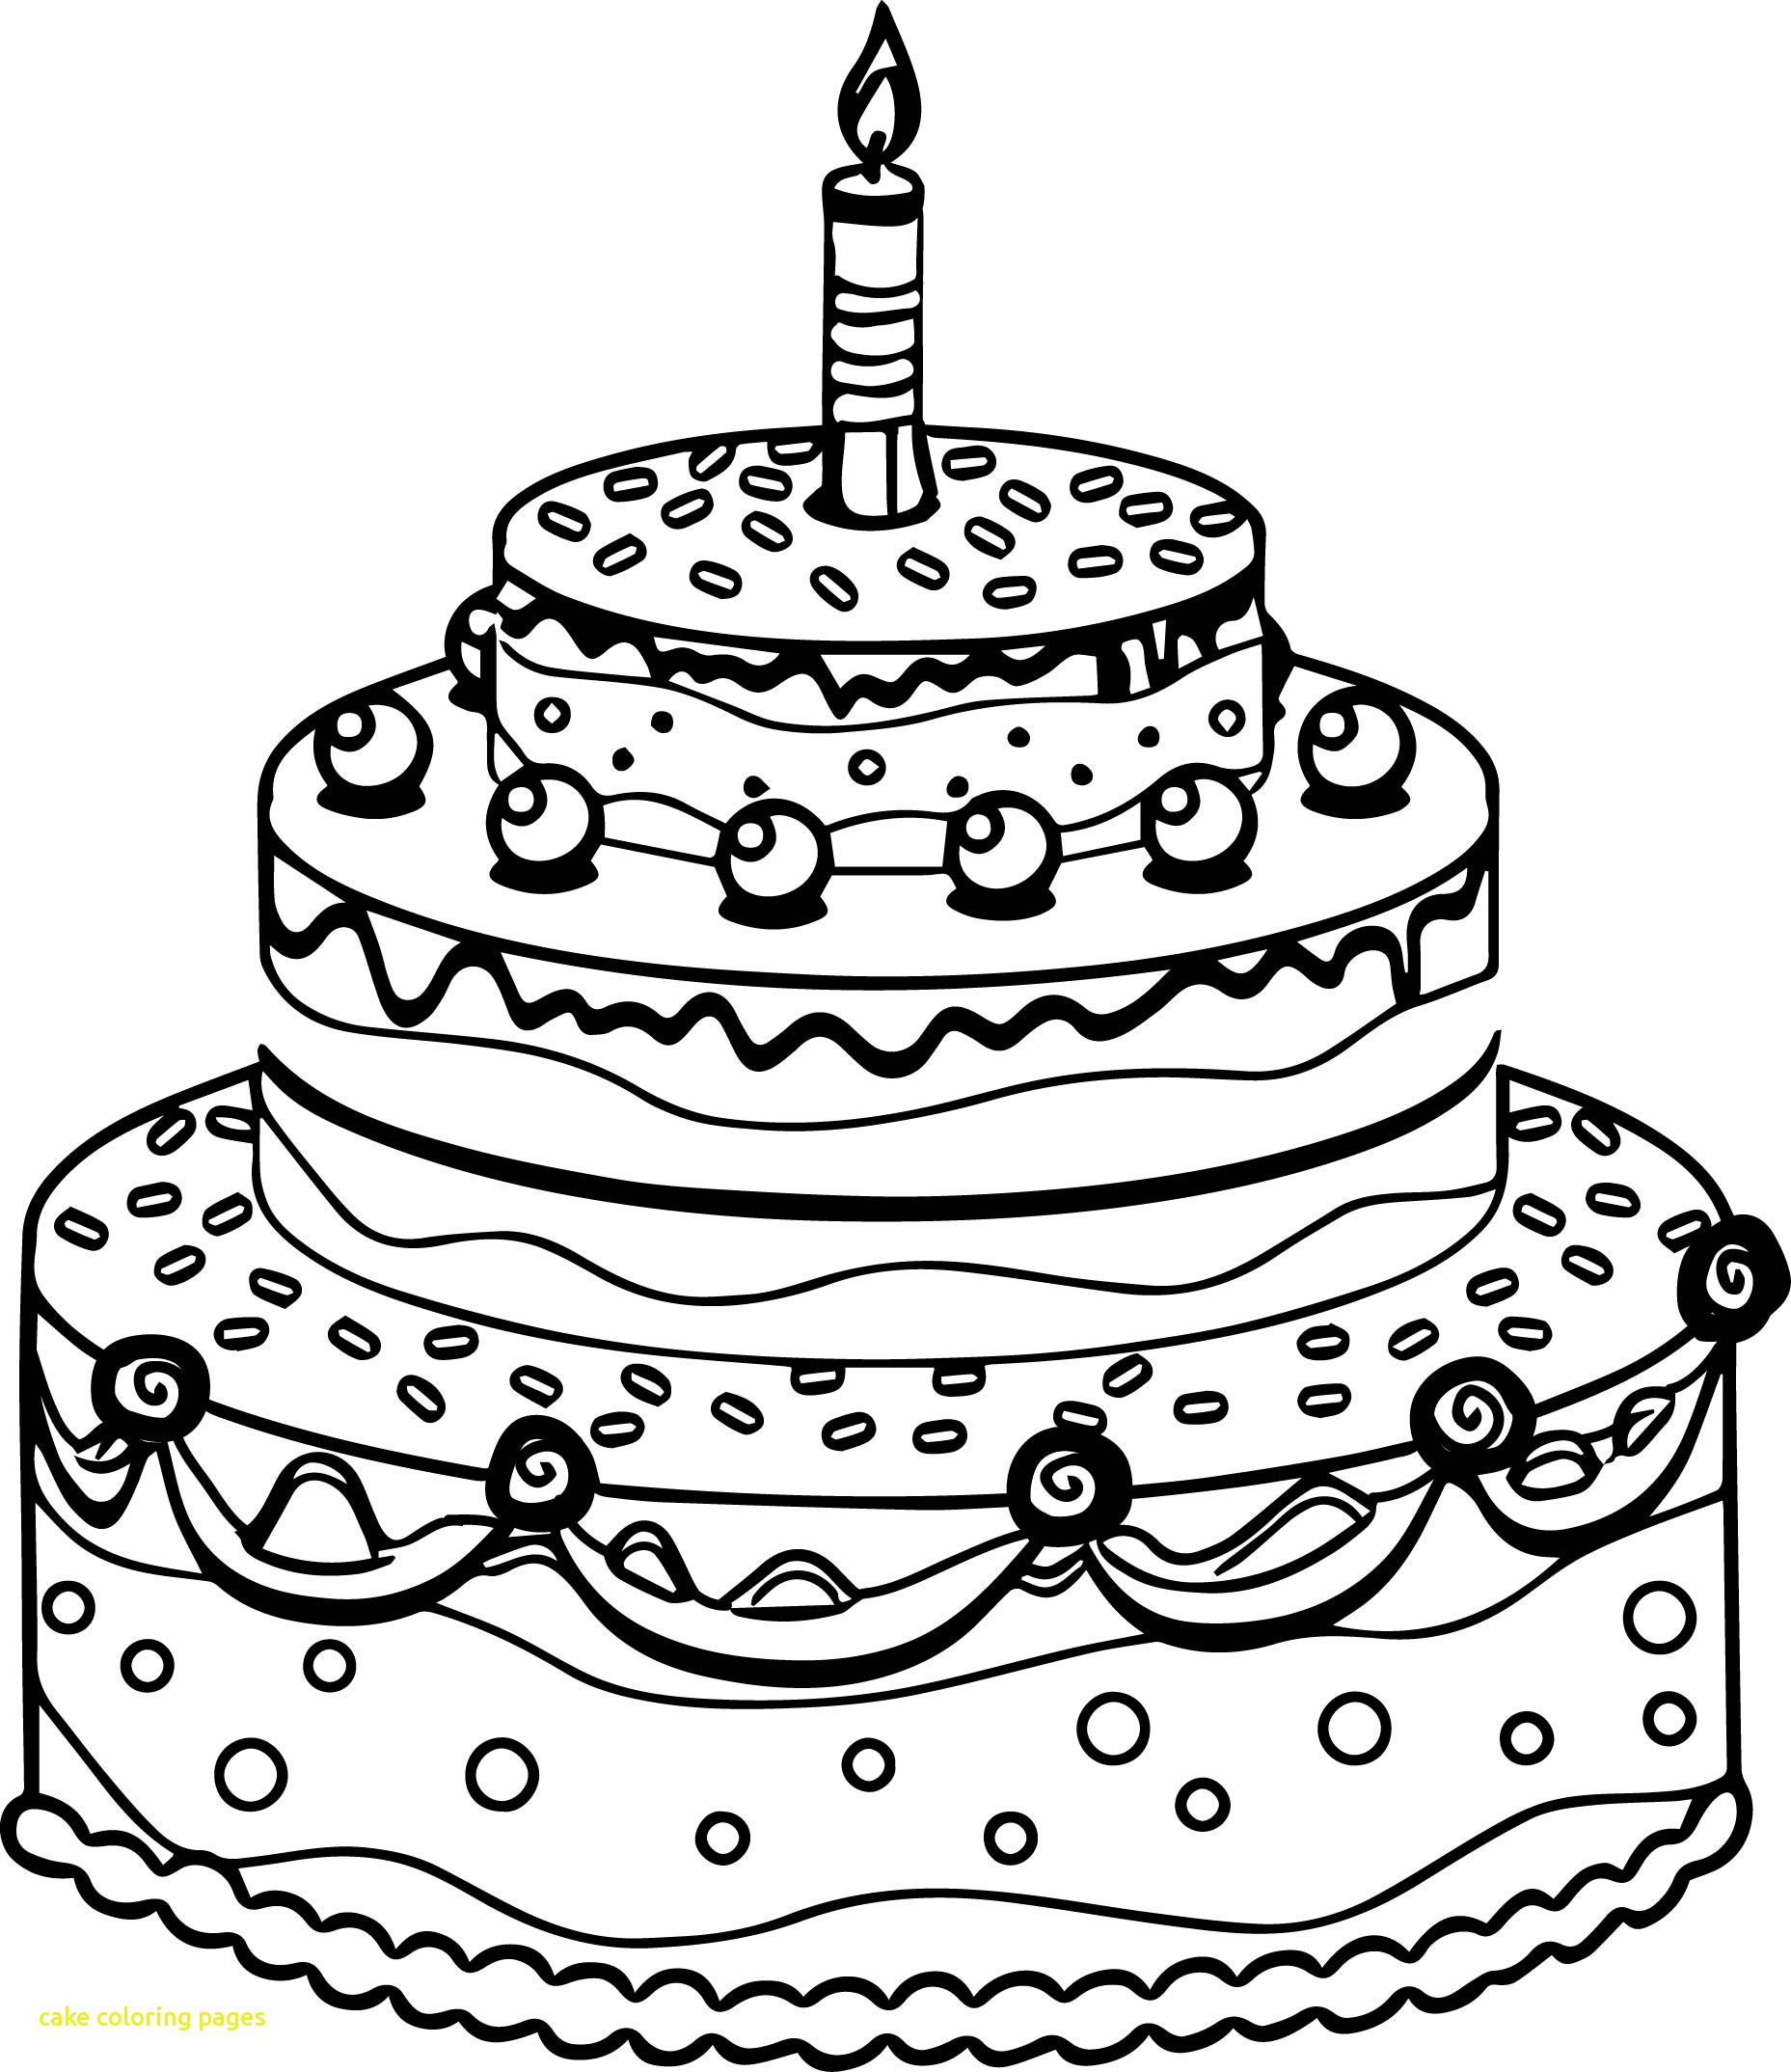 1857x2148 Cake Coloring Pages With Cute Birthday Cake Coloring Page